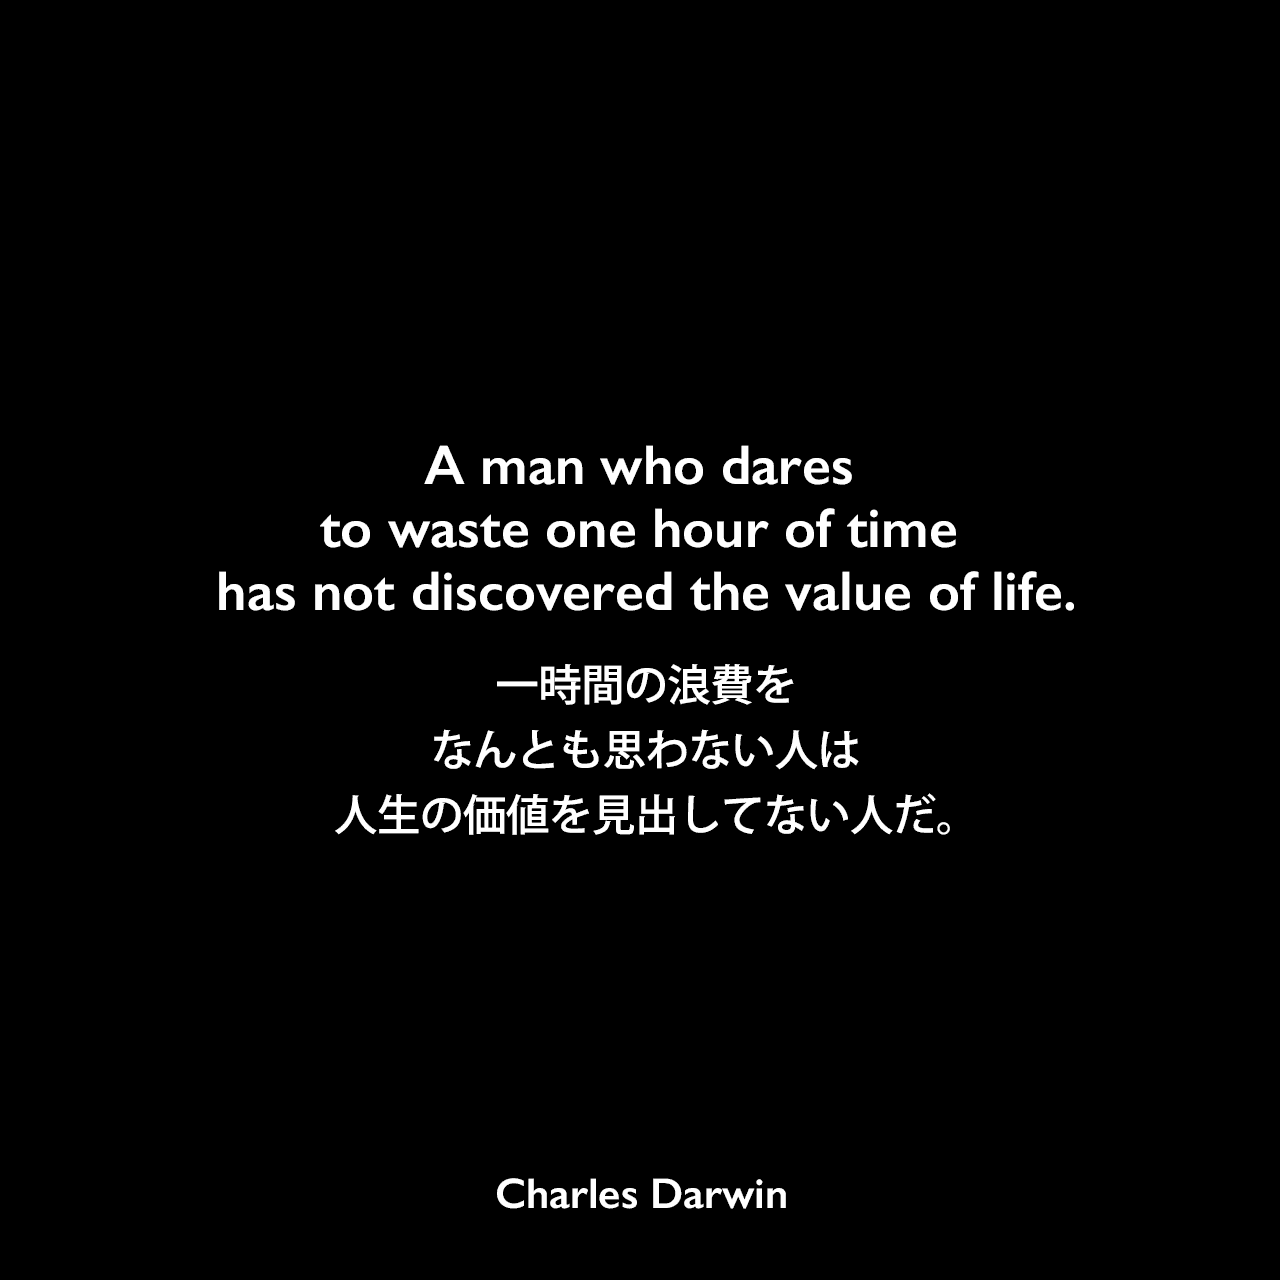 A man who dares to waste one hour of time has not discovered the value of life.一時間の浪費をなんとも思わない人は、人生の価値を見出してない人だ。- 姉に宛てたダーウィンの手紙よりCharles Darwin